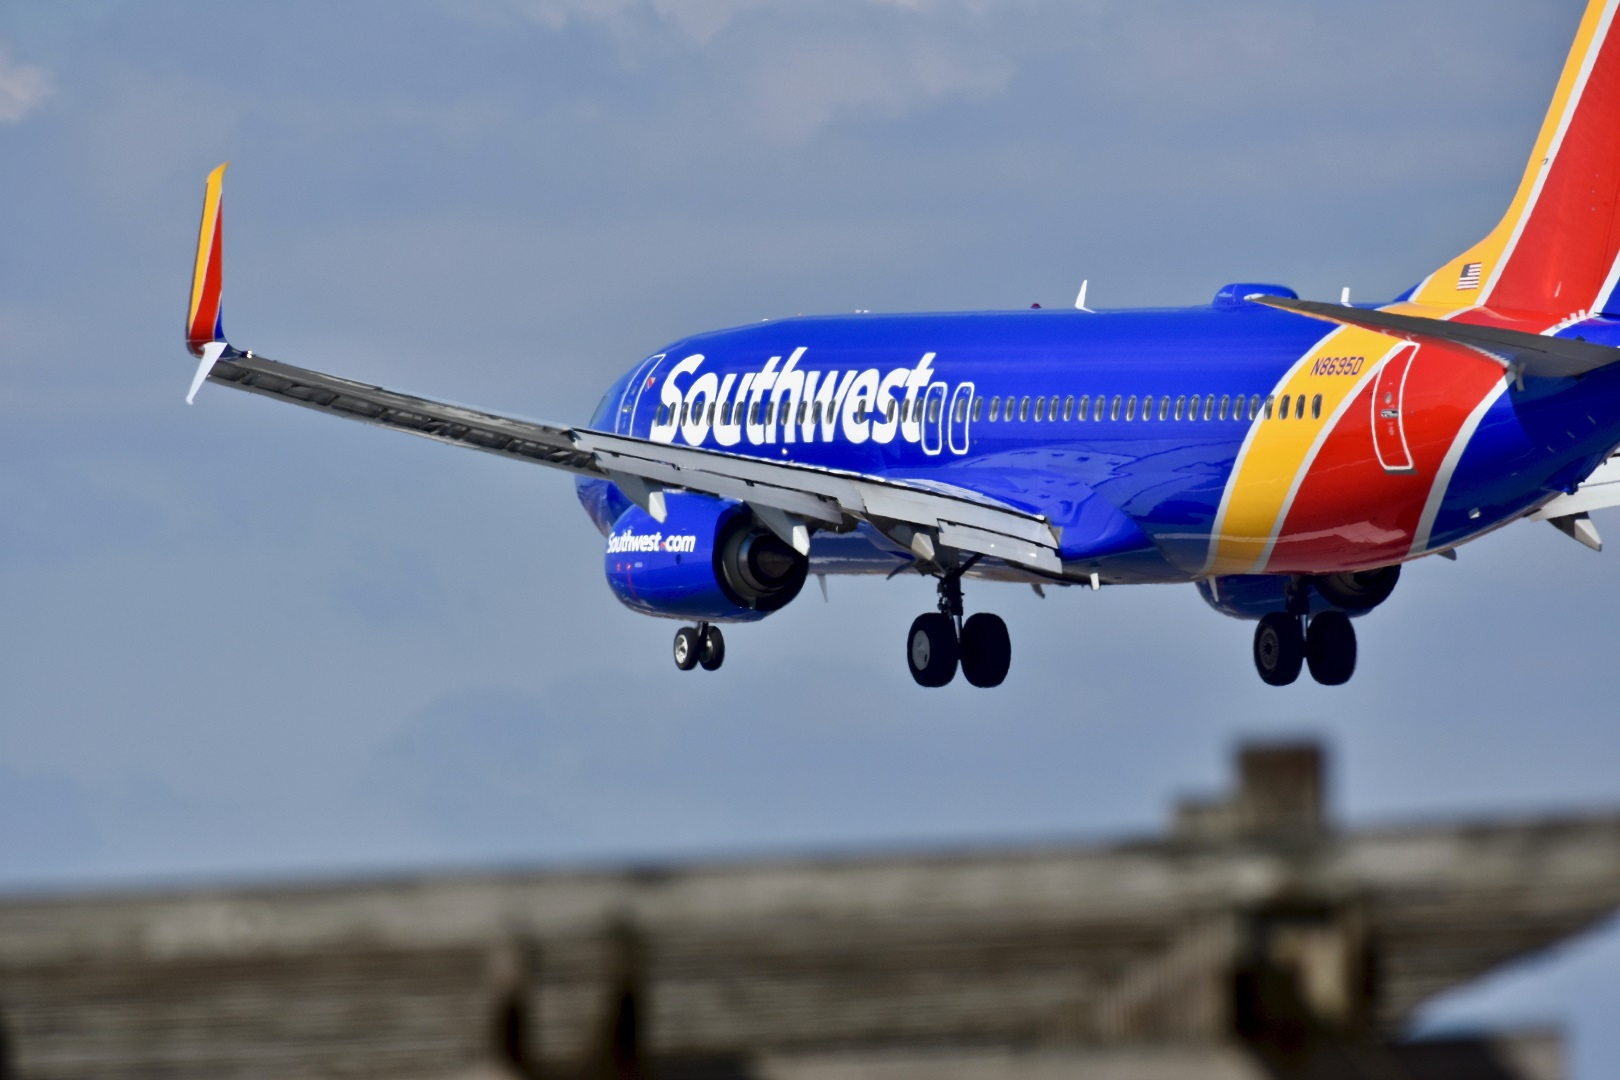 Southwest Airline Plane Flying